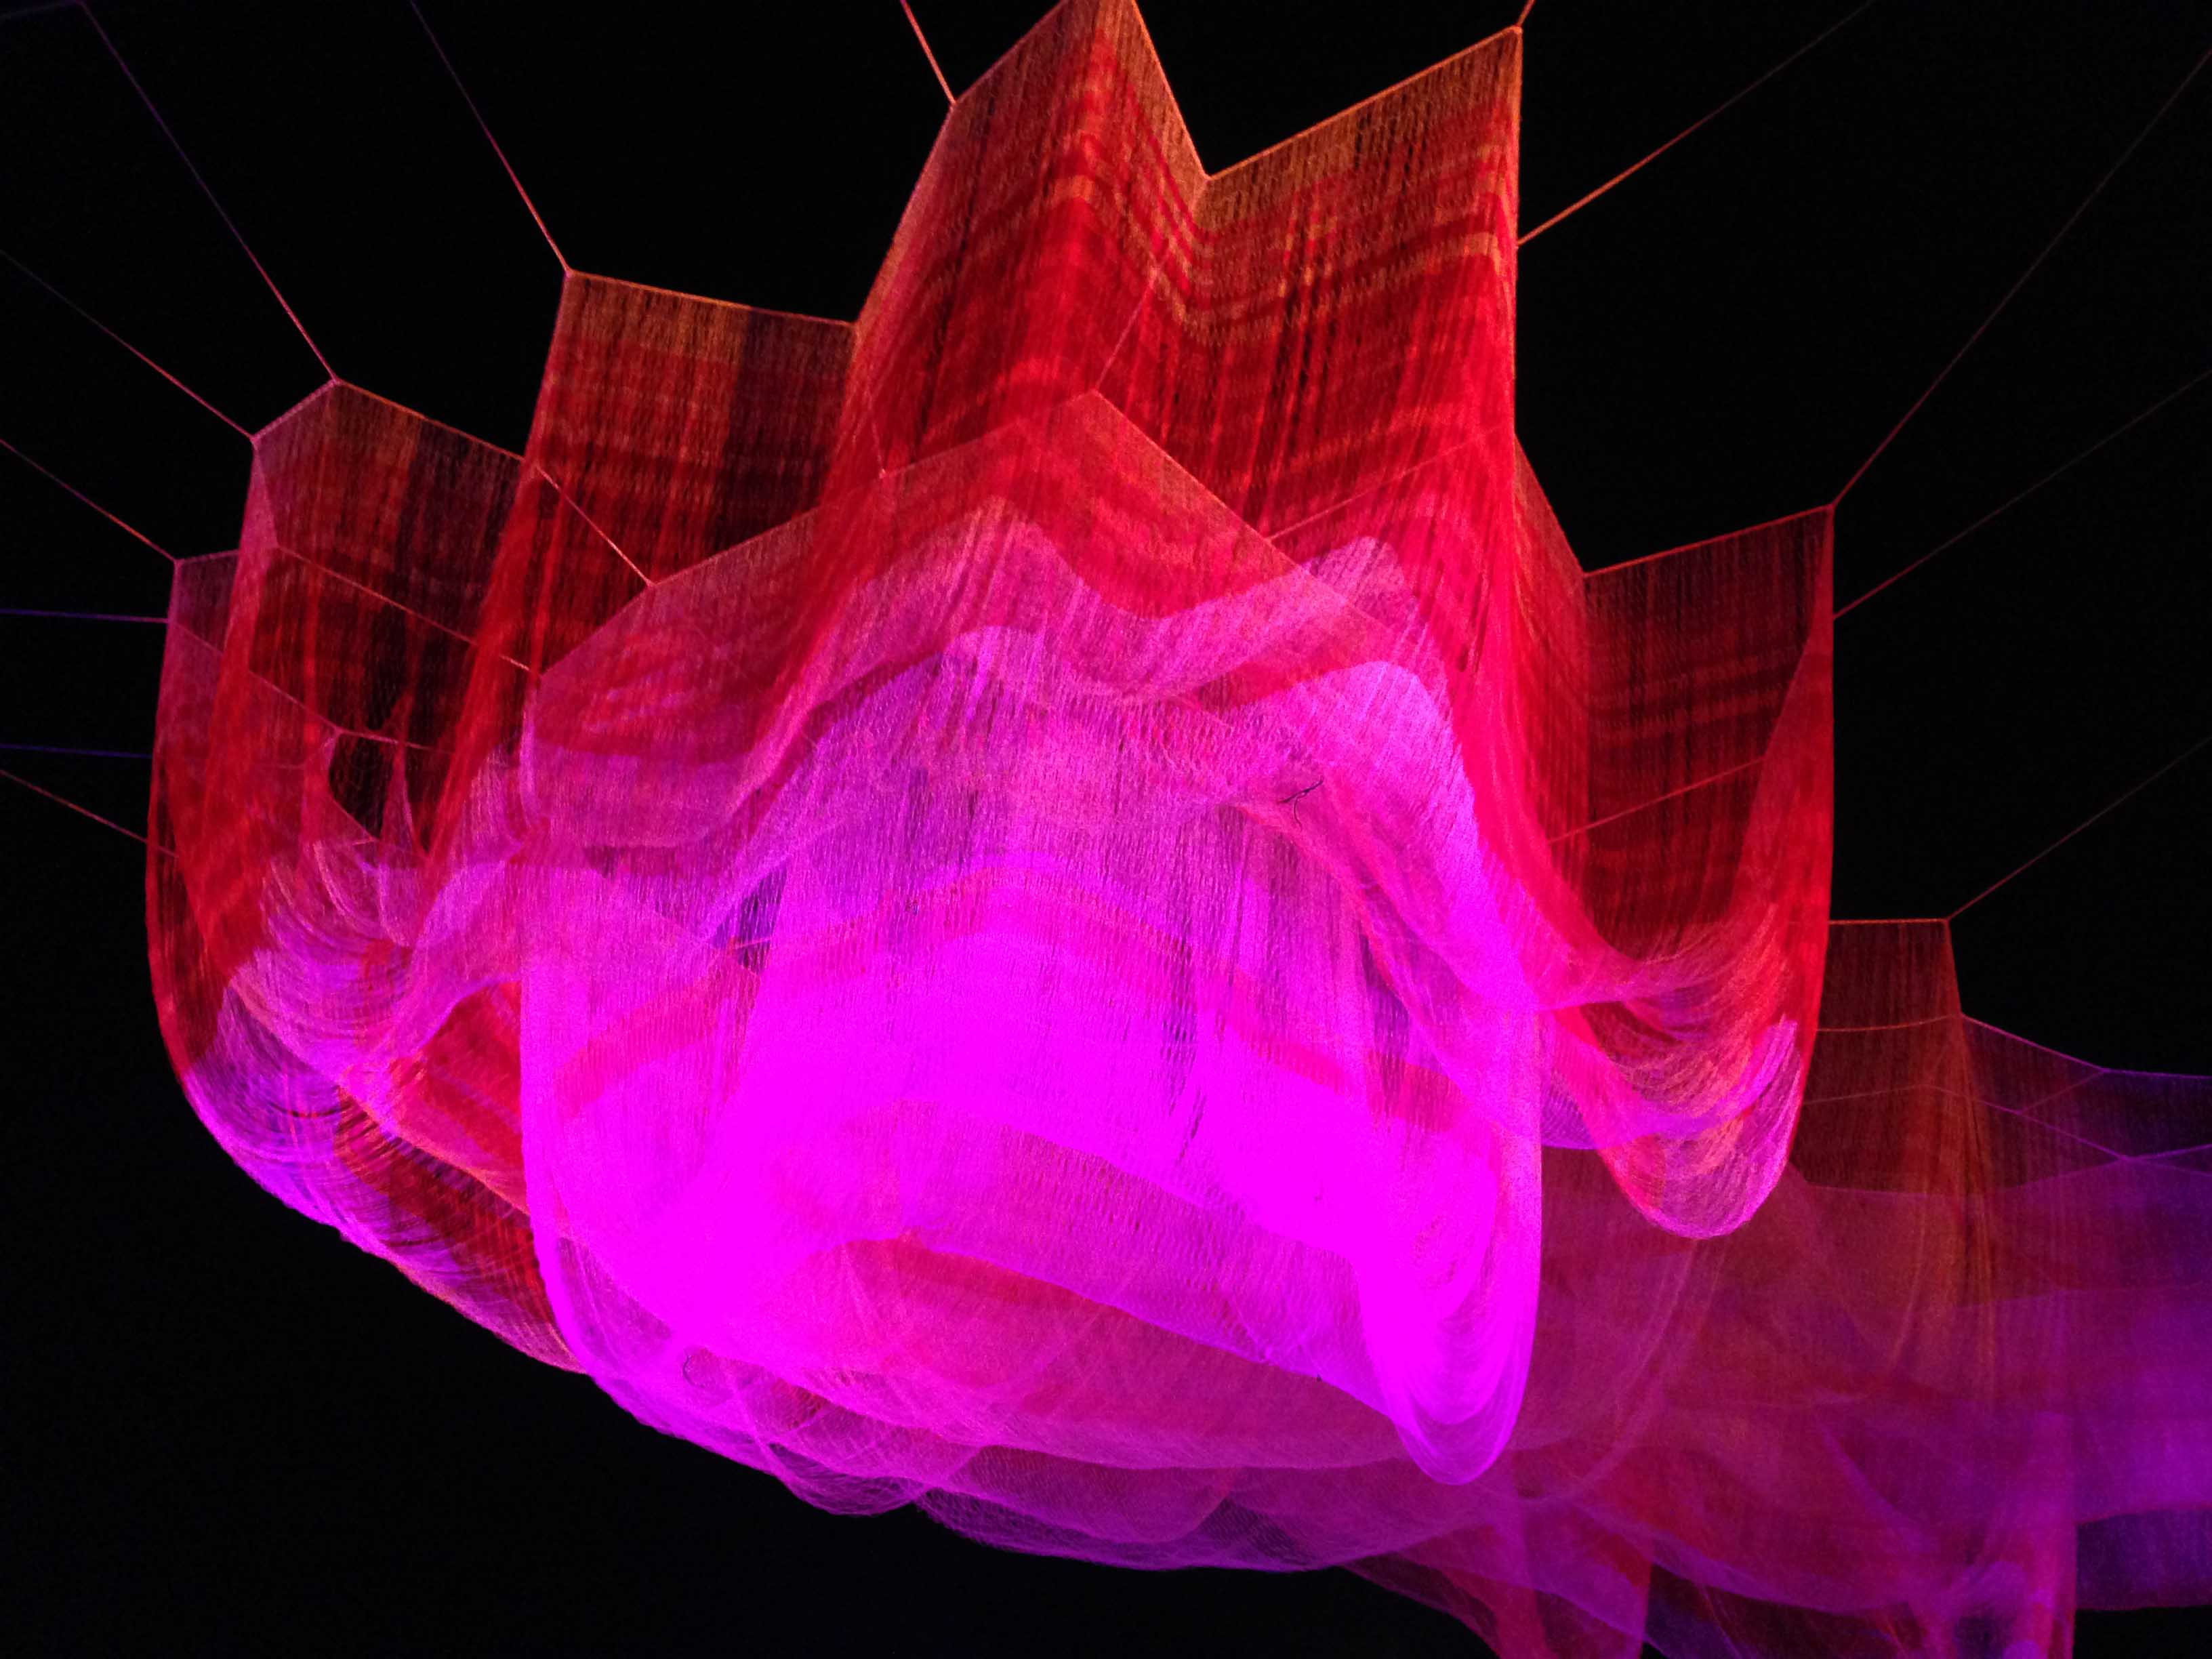 Adobe Max conference, aerial sculpture by Janet Echelman